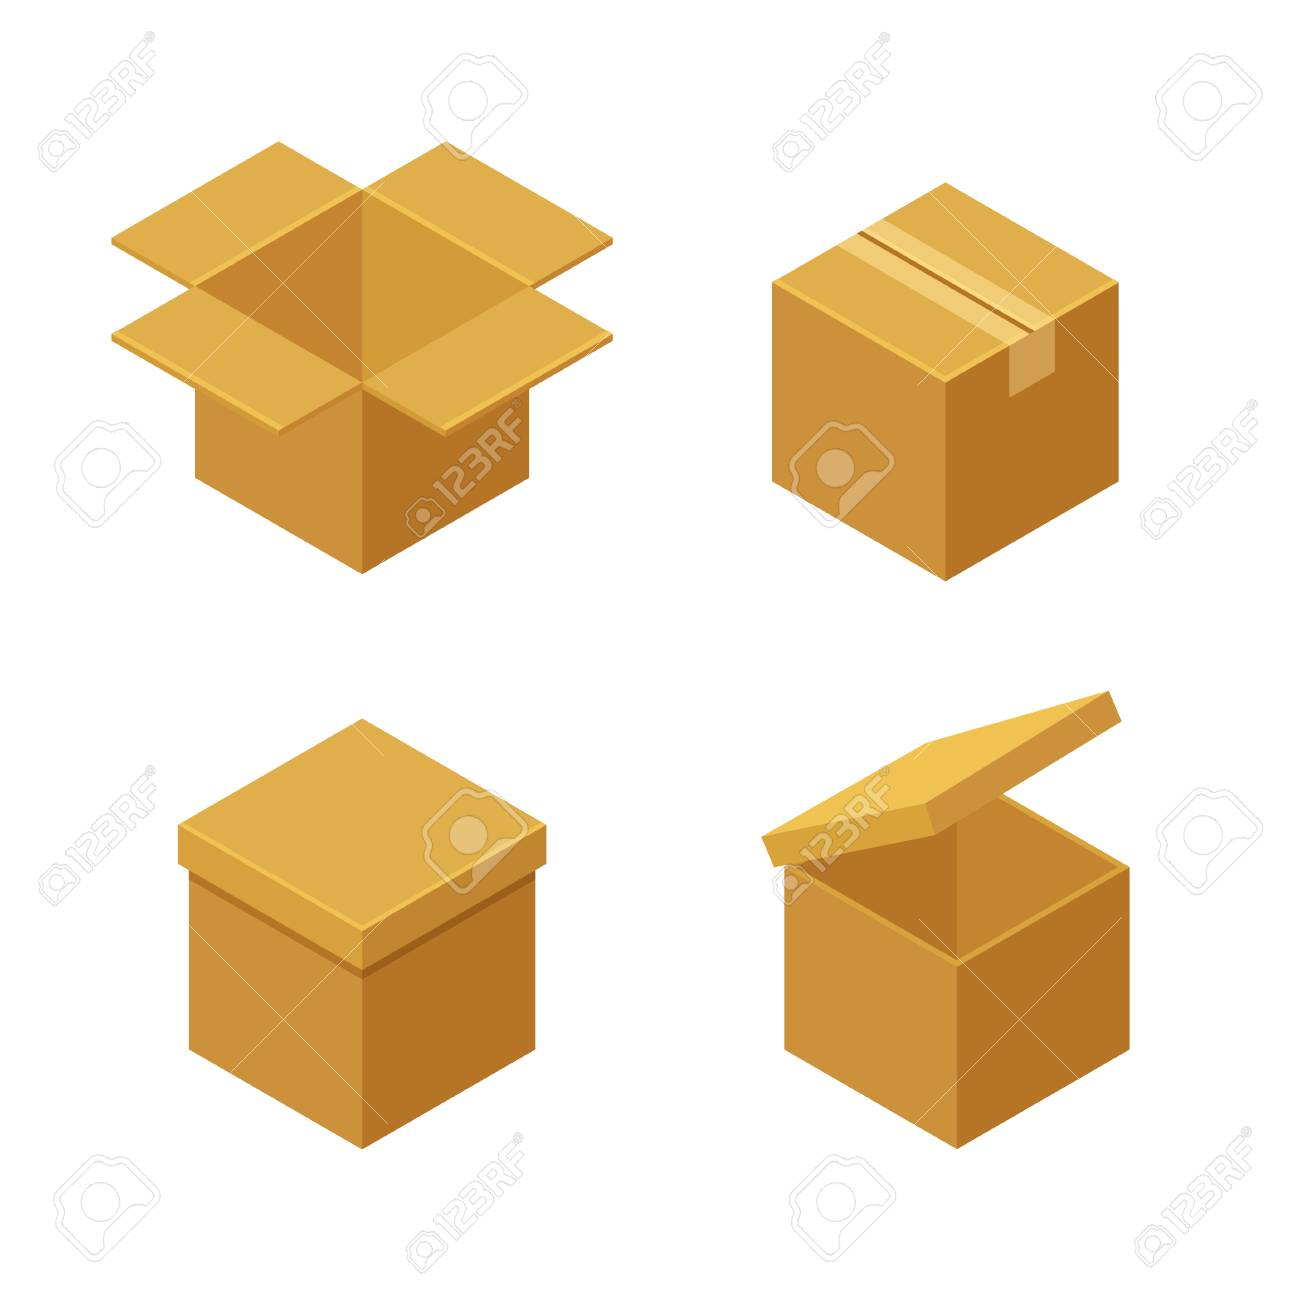 boxes and packaging icon set closed and open isometric cardboard rh 123rf com vector packaging fort worth vector packaging templates